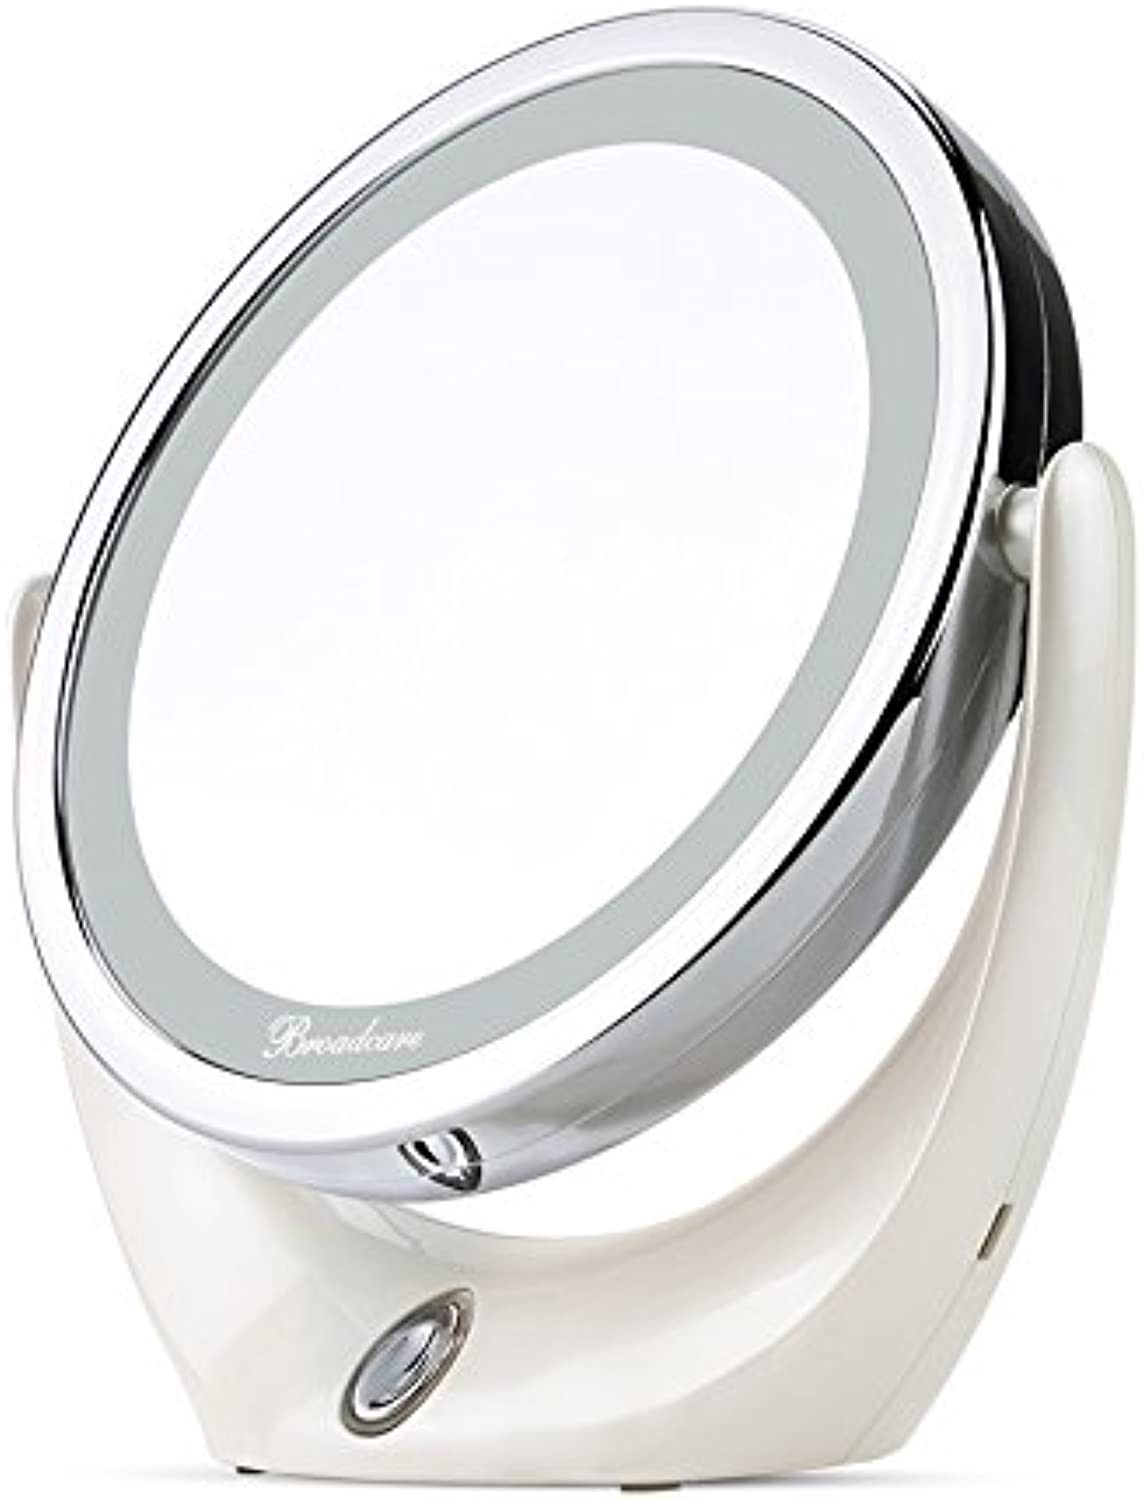 Bedroom Makeup Magnifying Mirror with Lights 360 Degree Dual Sided Swivel Cordless USB Charging LED Mirrors Tabletop,175mm180mm65mm